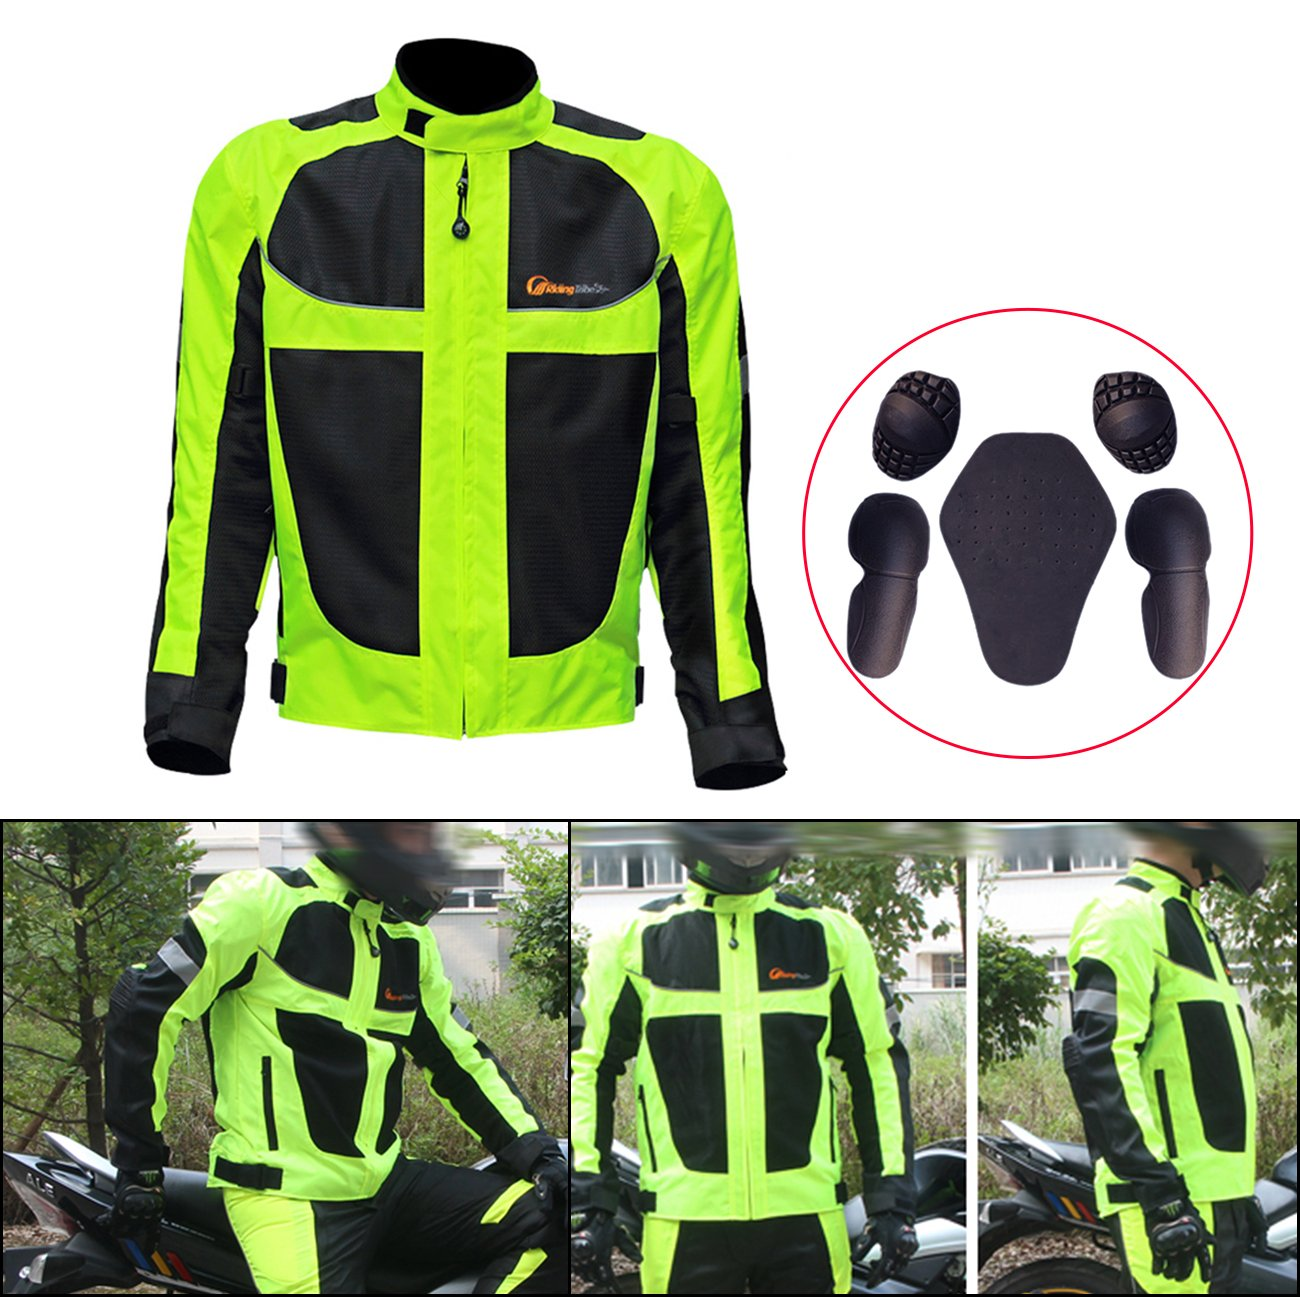 E-Most Outdoor Motorcycle Riding Racing Track Jacket With Fluorescent Reflective Stripe Windproof Waterproof Textile Jacket (Summer&Winter)